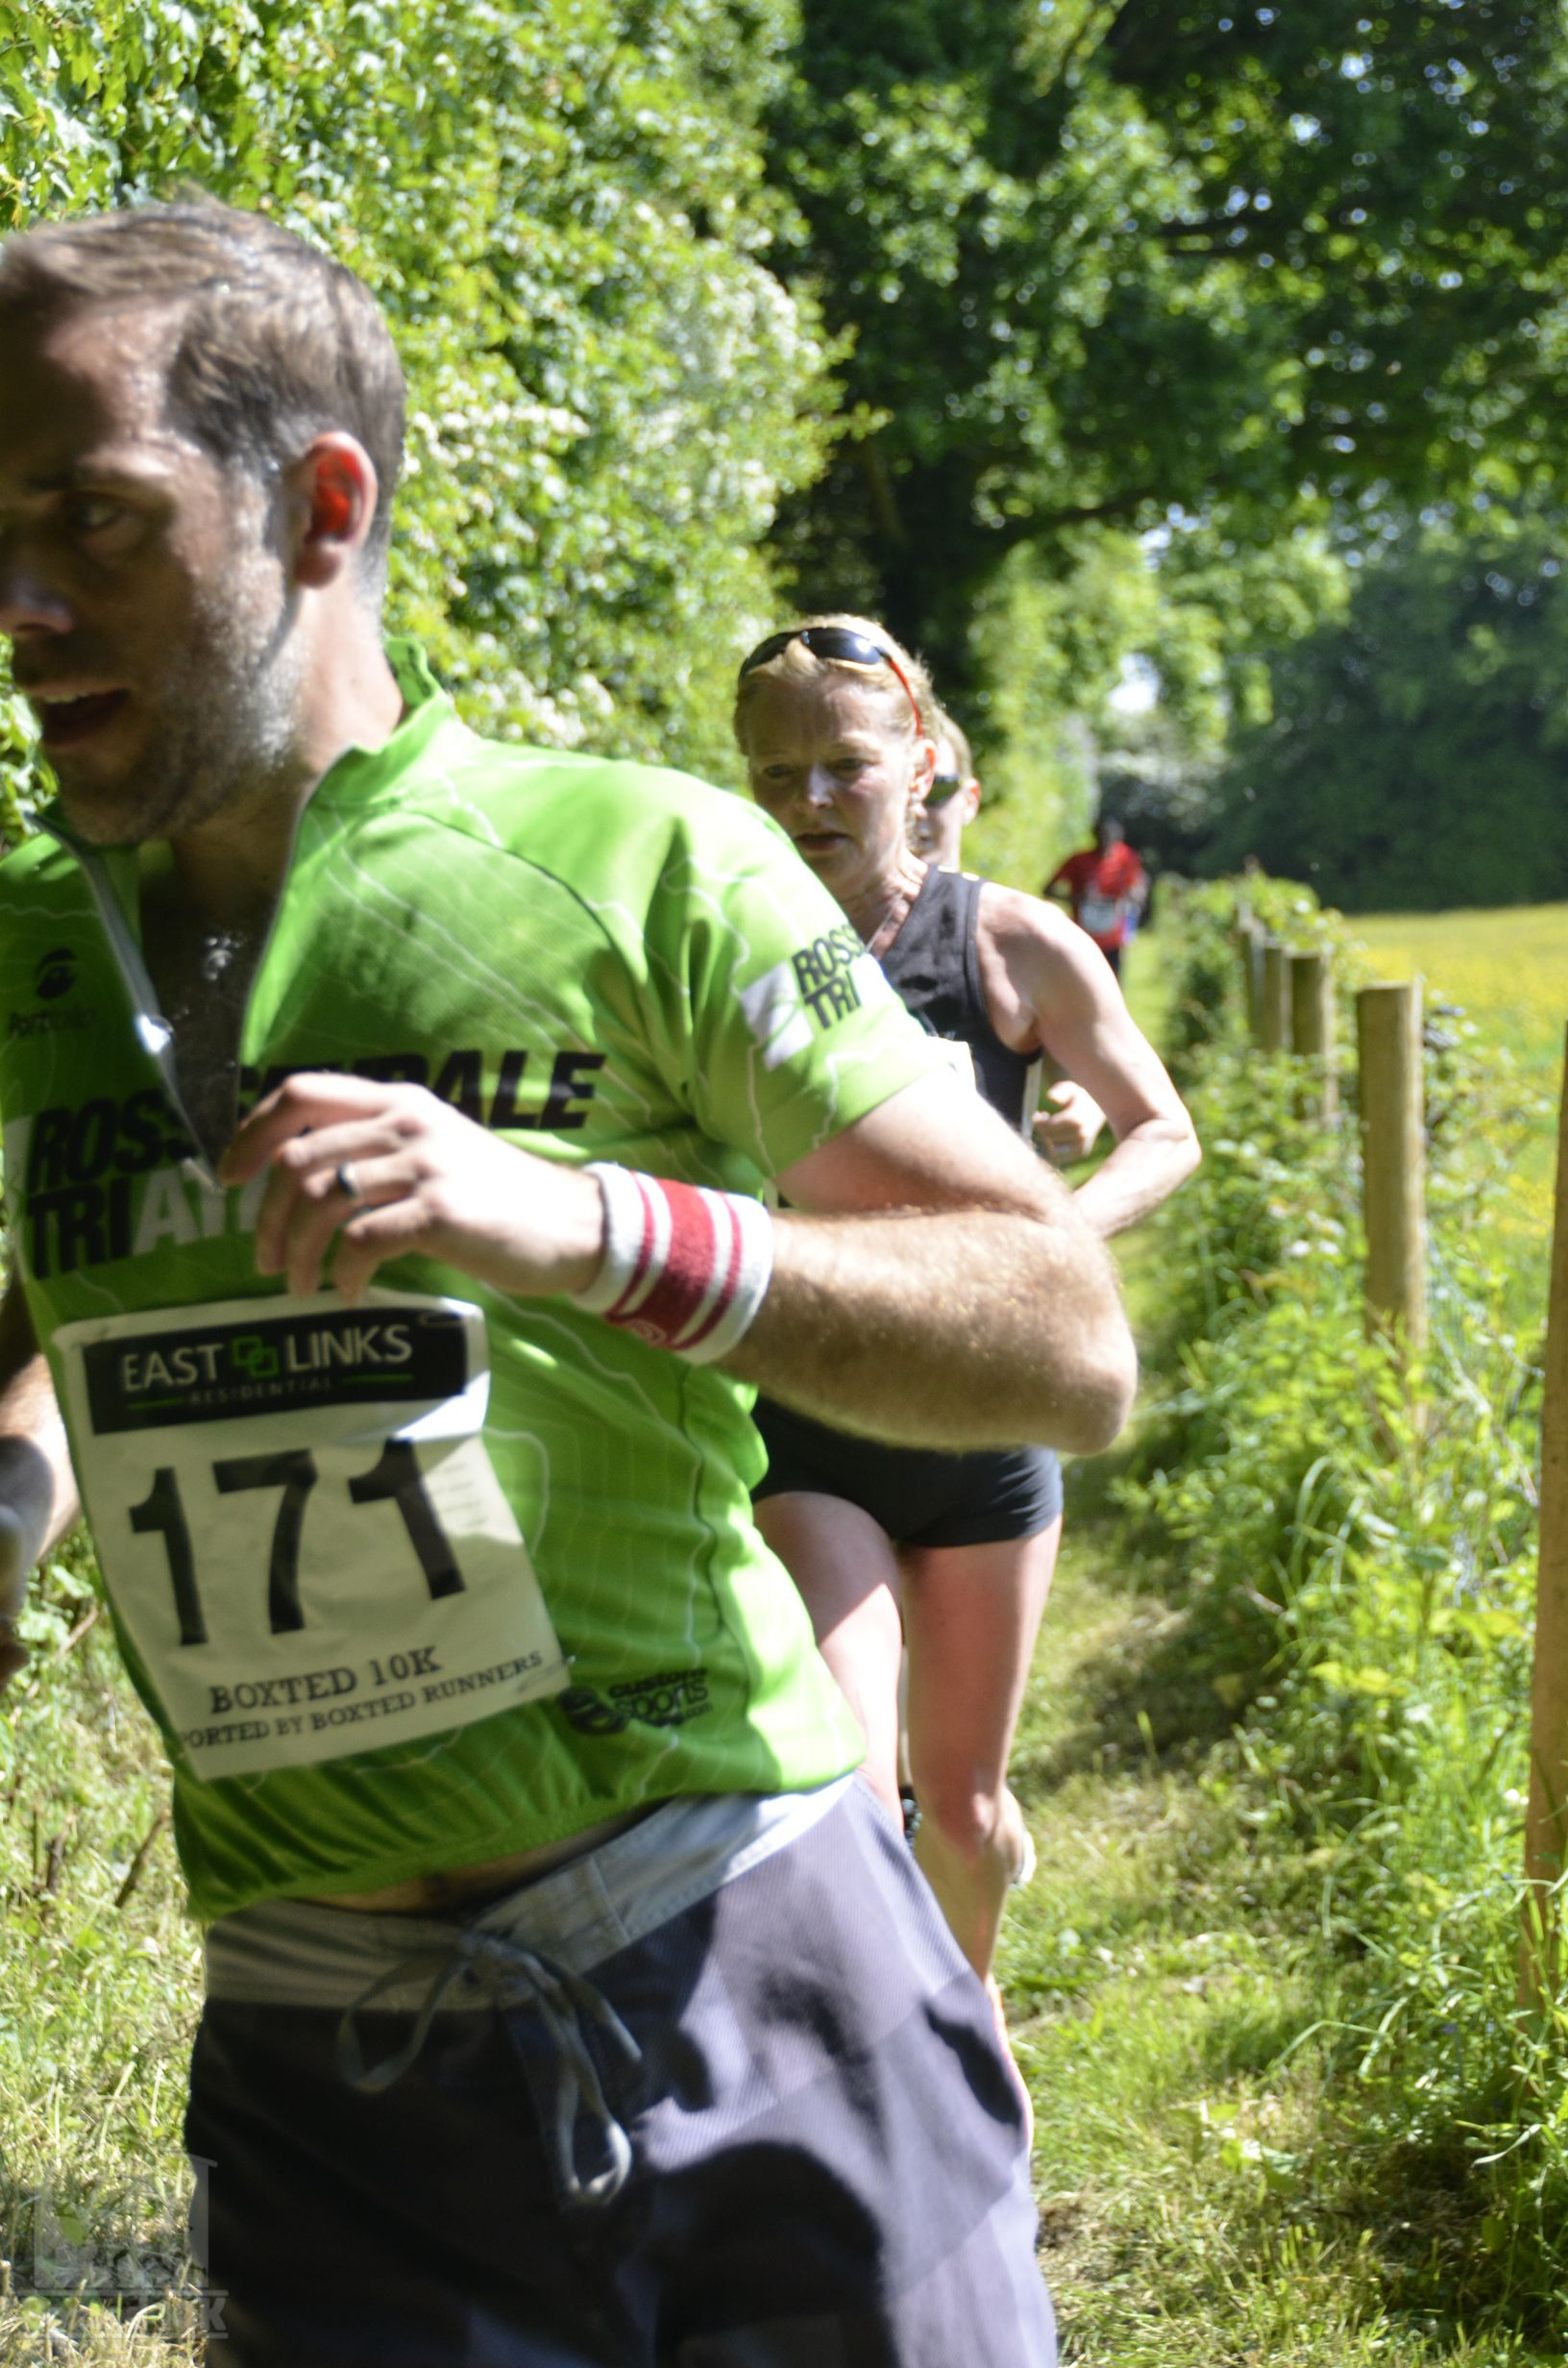 Boxted10k-00138